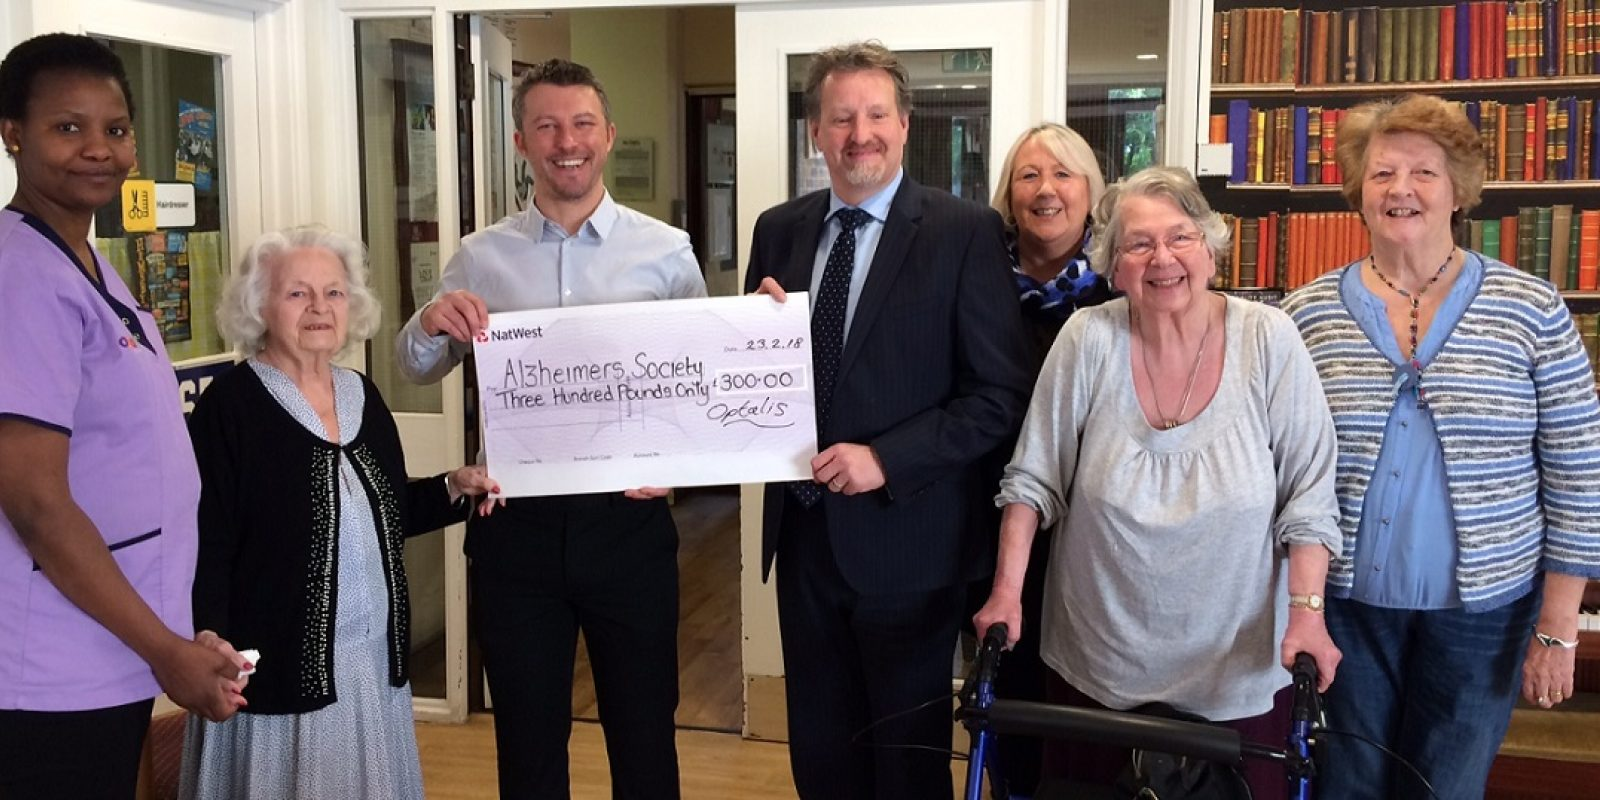 Alzheimers Society cheque handover